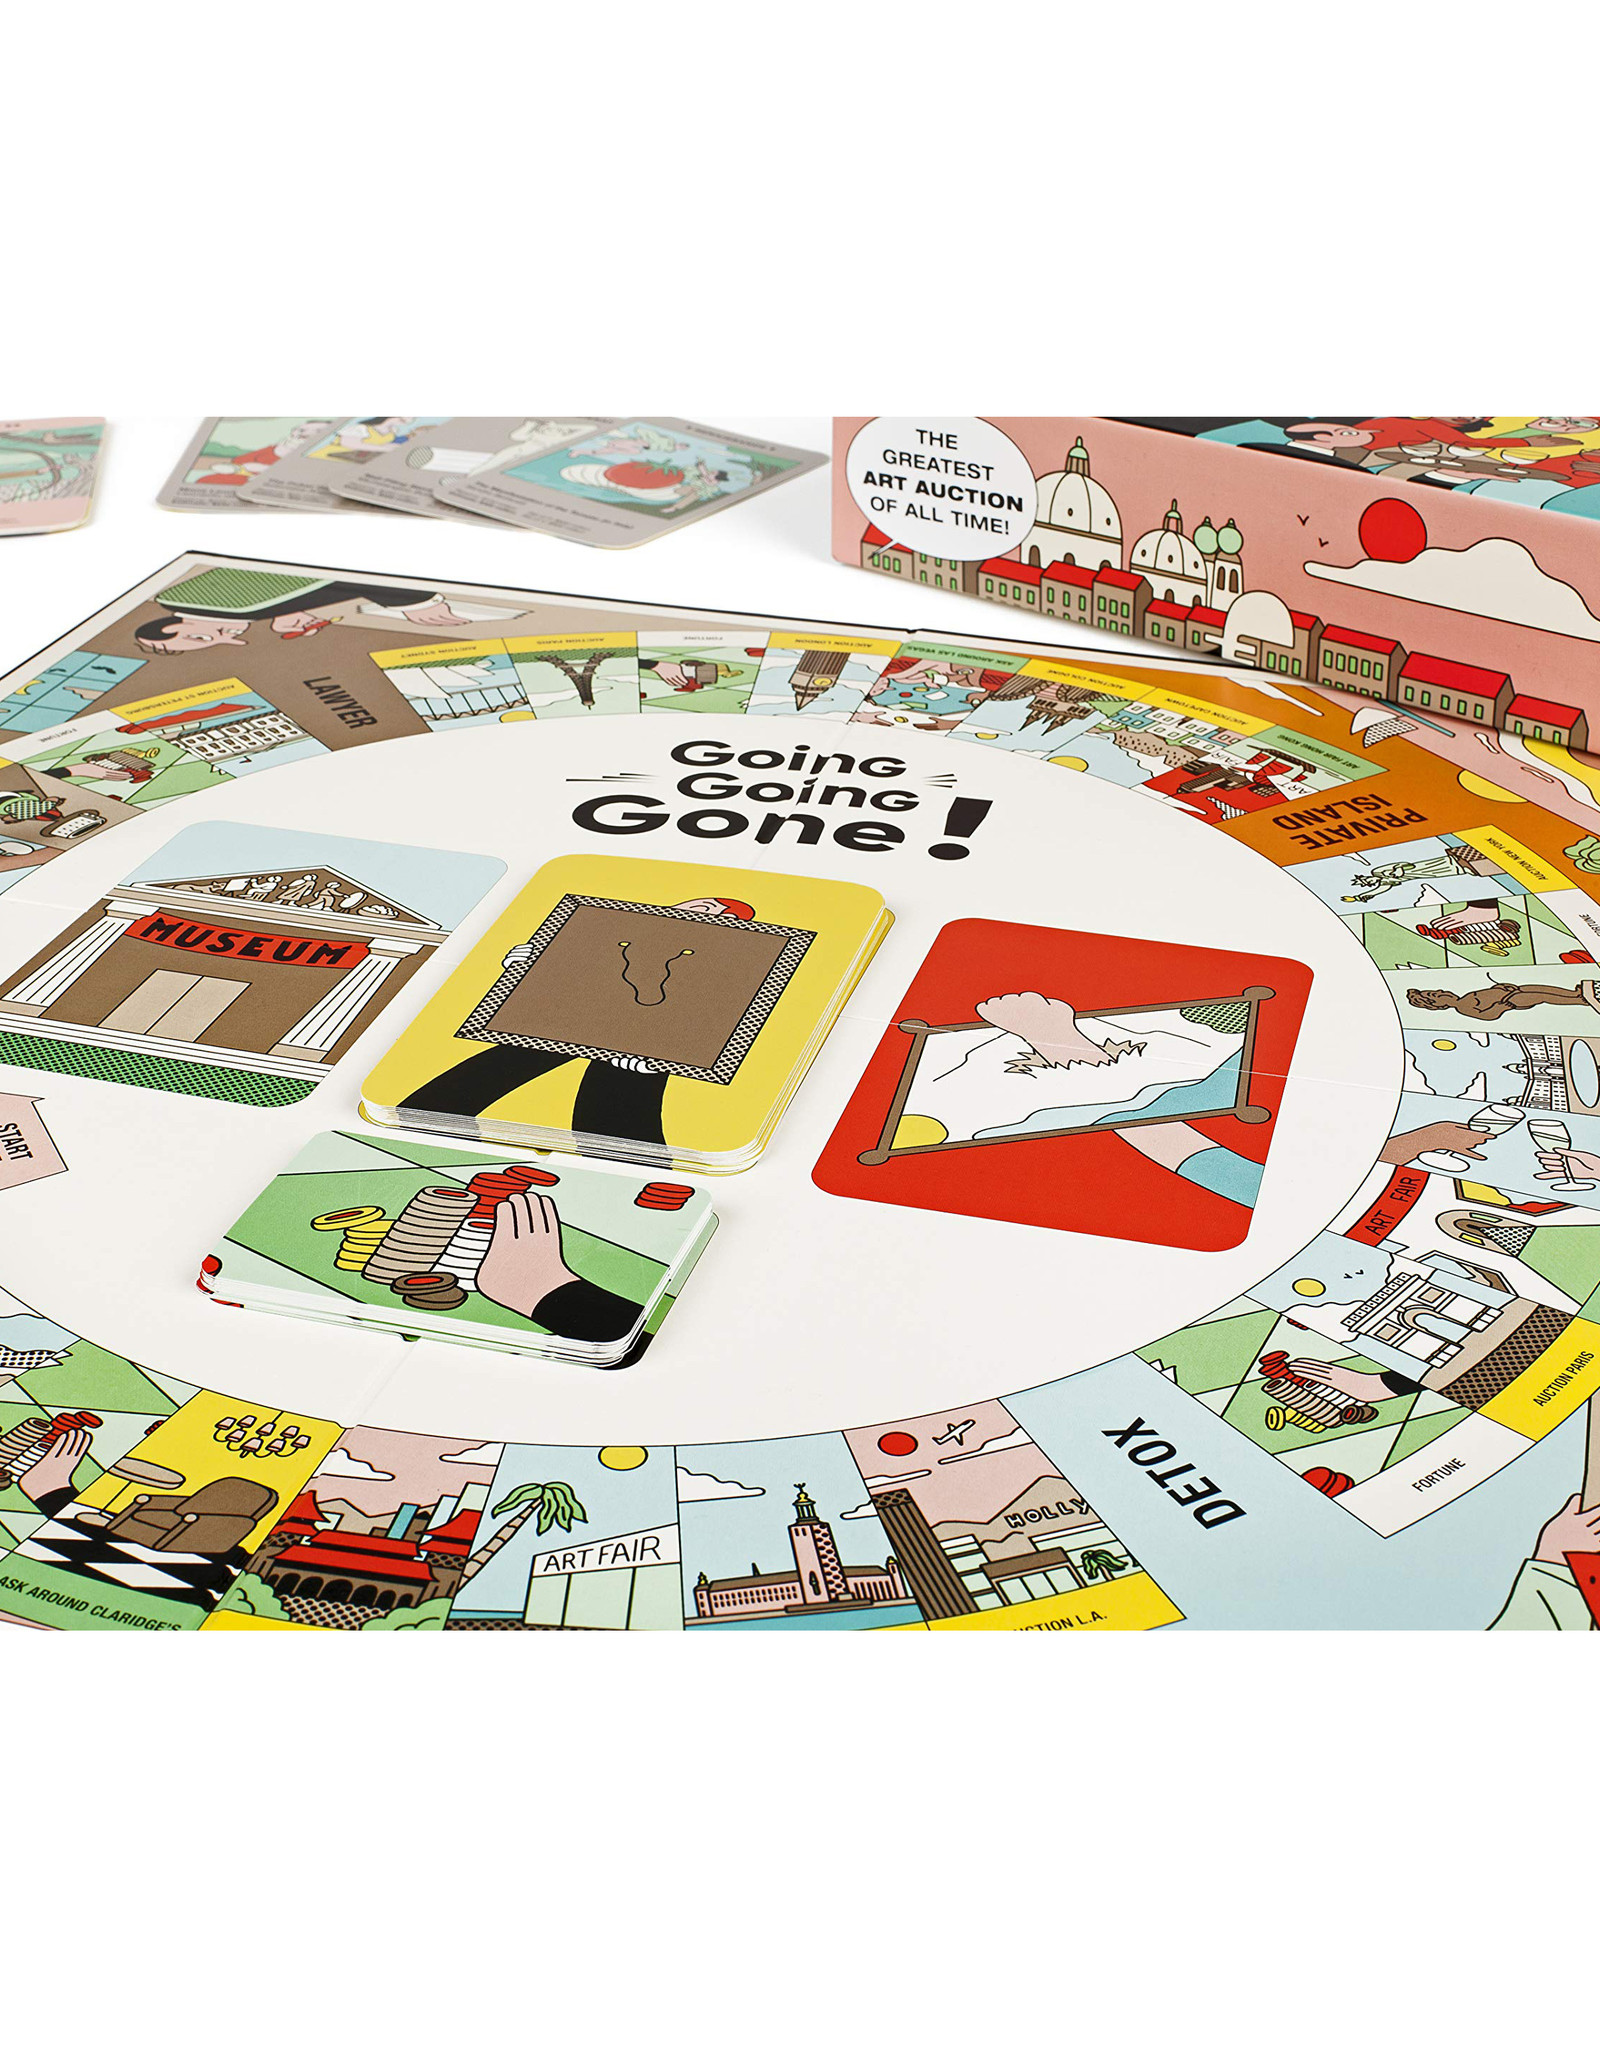 Going Going Gone Board Game